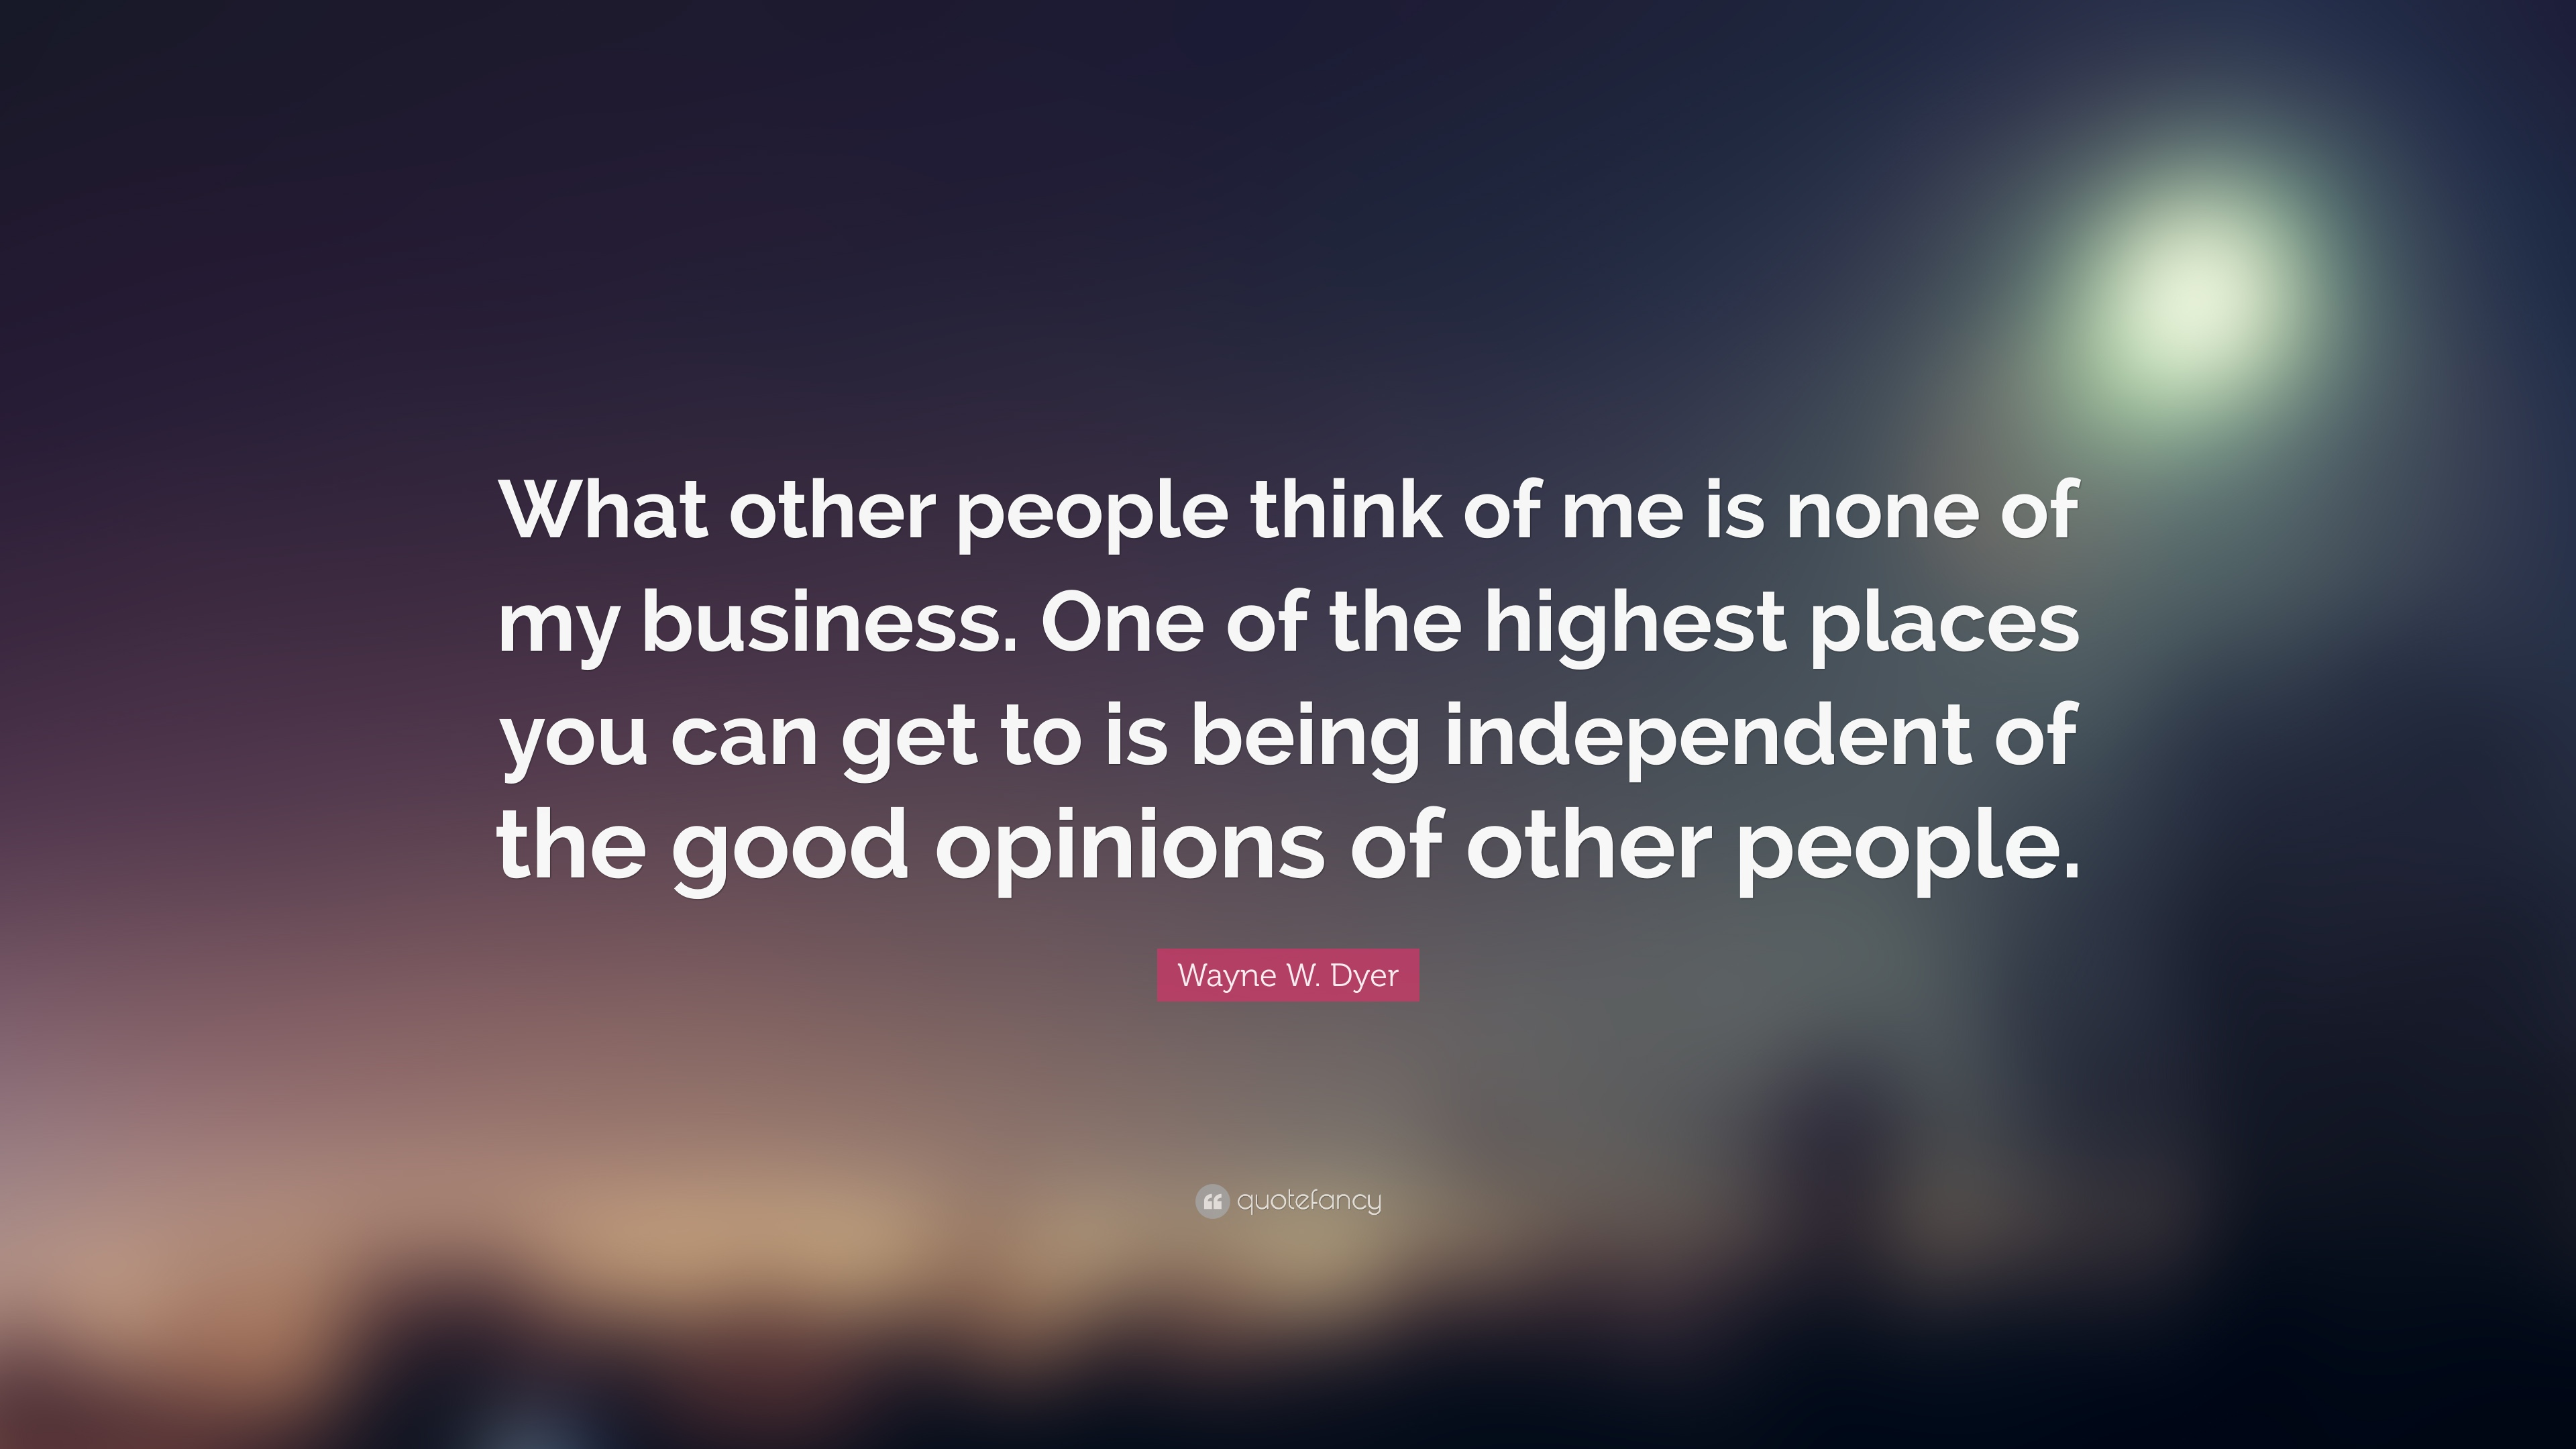 Wayne W Dyer Quote What Other People Think Of Me Is None Of My